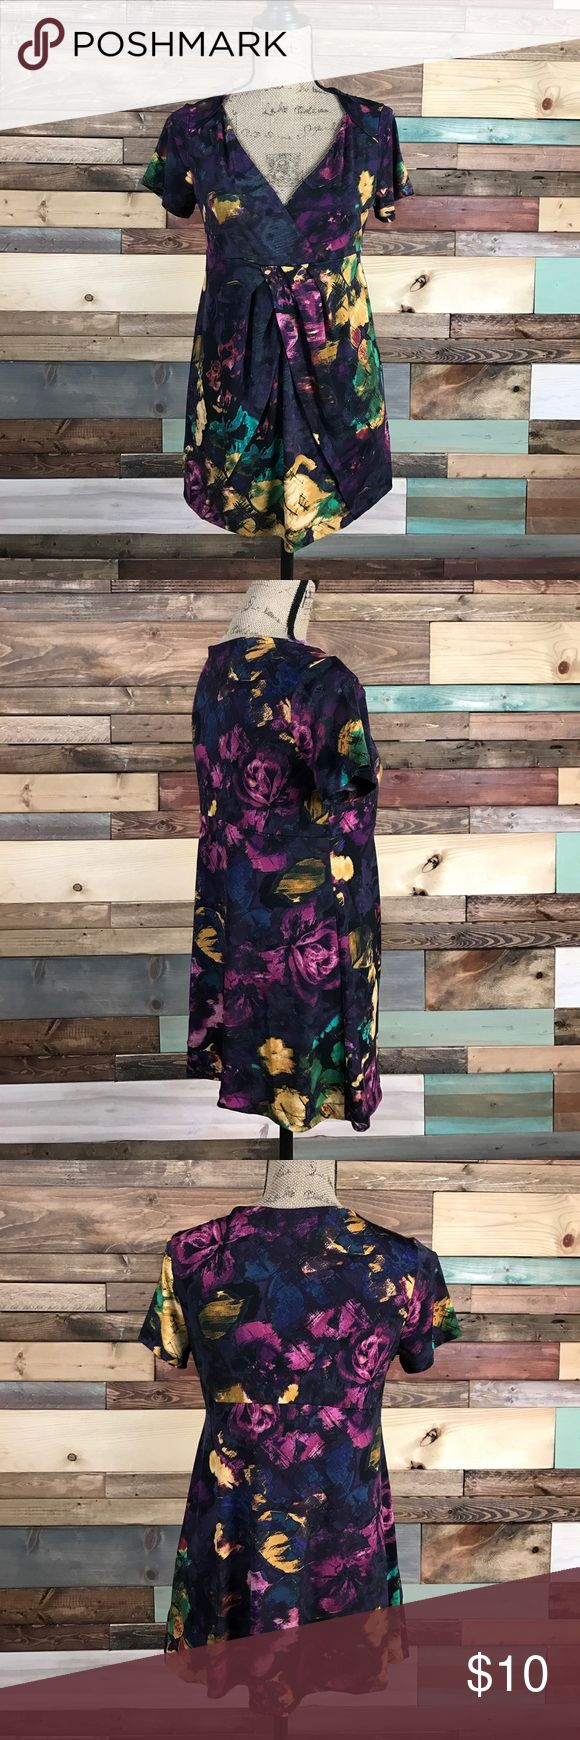 "Daisy Fuentes VNeck Floral Patterned Tunic M Daisy Fuentes VNeck Floral Patterned Tunic M Bust: 18"" laying flat // length: 28"" Daisy Fuentes Tops Tunics"